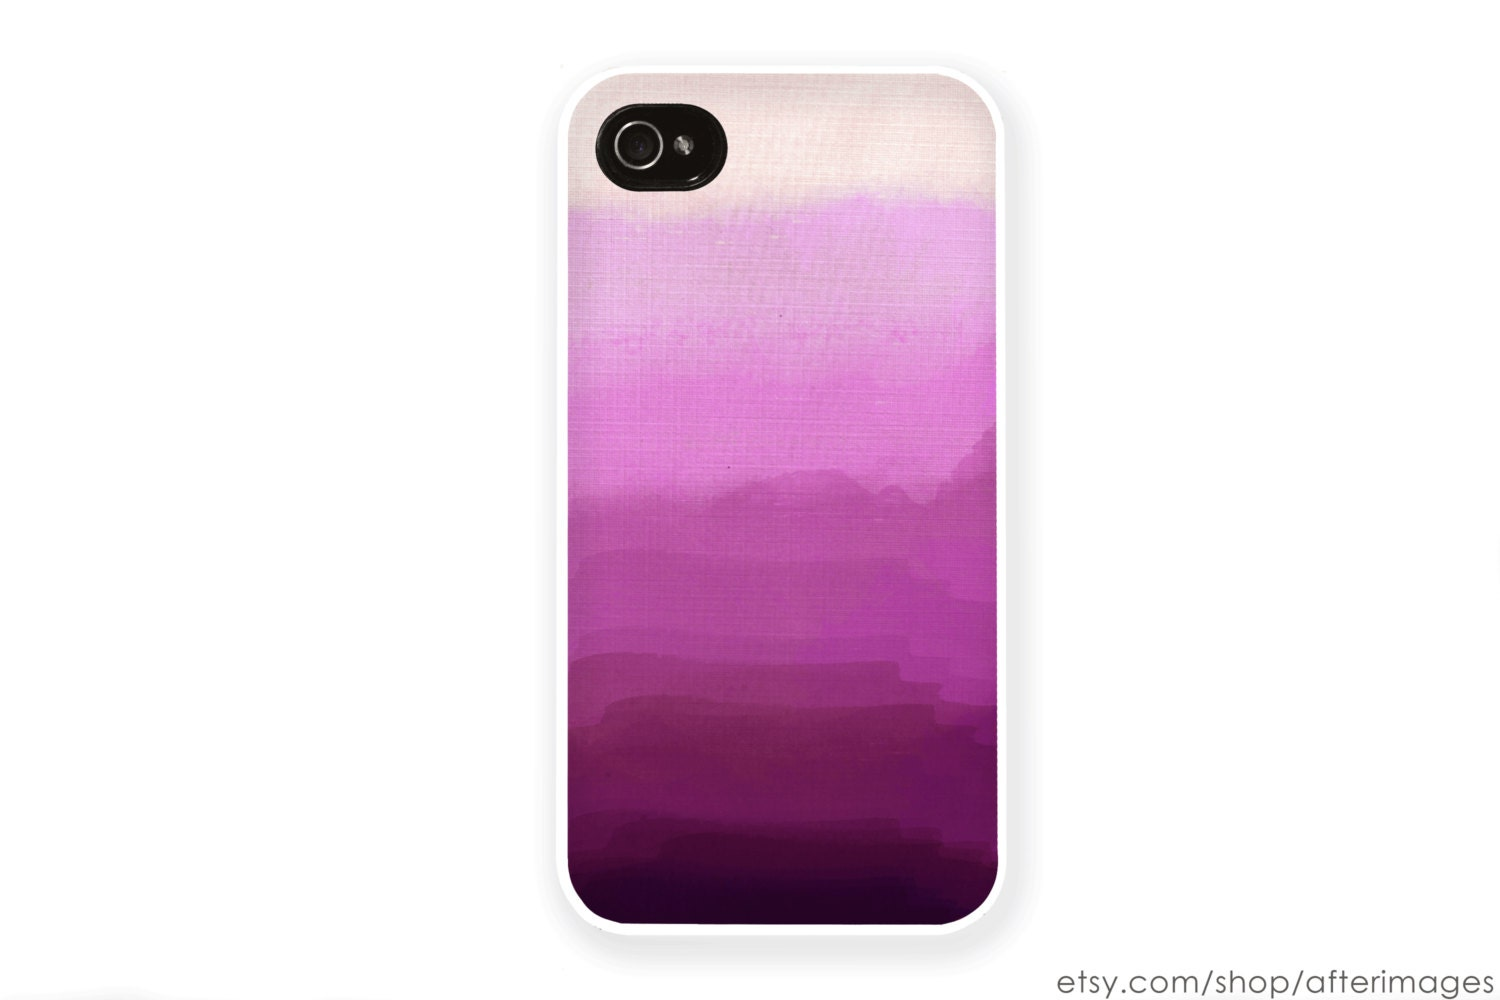 Radiant Orchid iPhone Case / Lavender Ombre iPhone 4 Case iPhone 5S Case Radiant Orchid Ombre iPhone 5 Case iPhone 4S Case iPhone 5C Case - afterimages